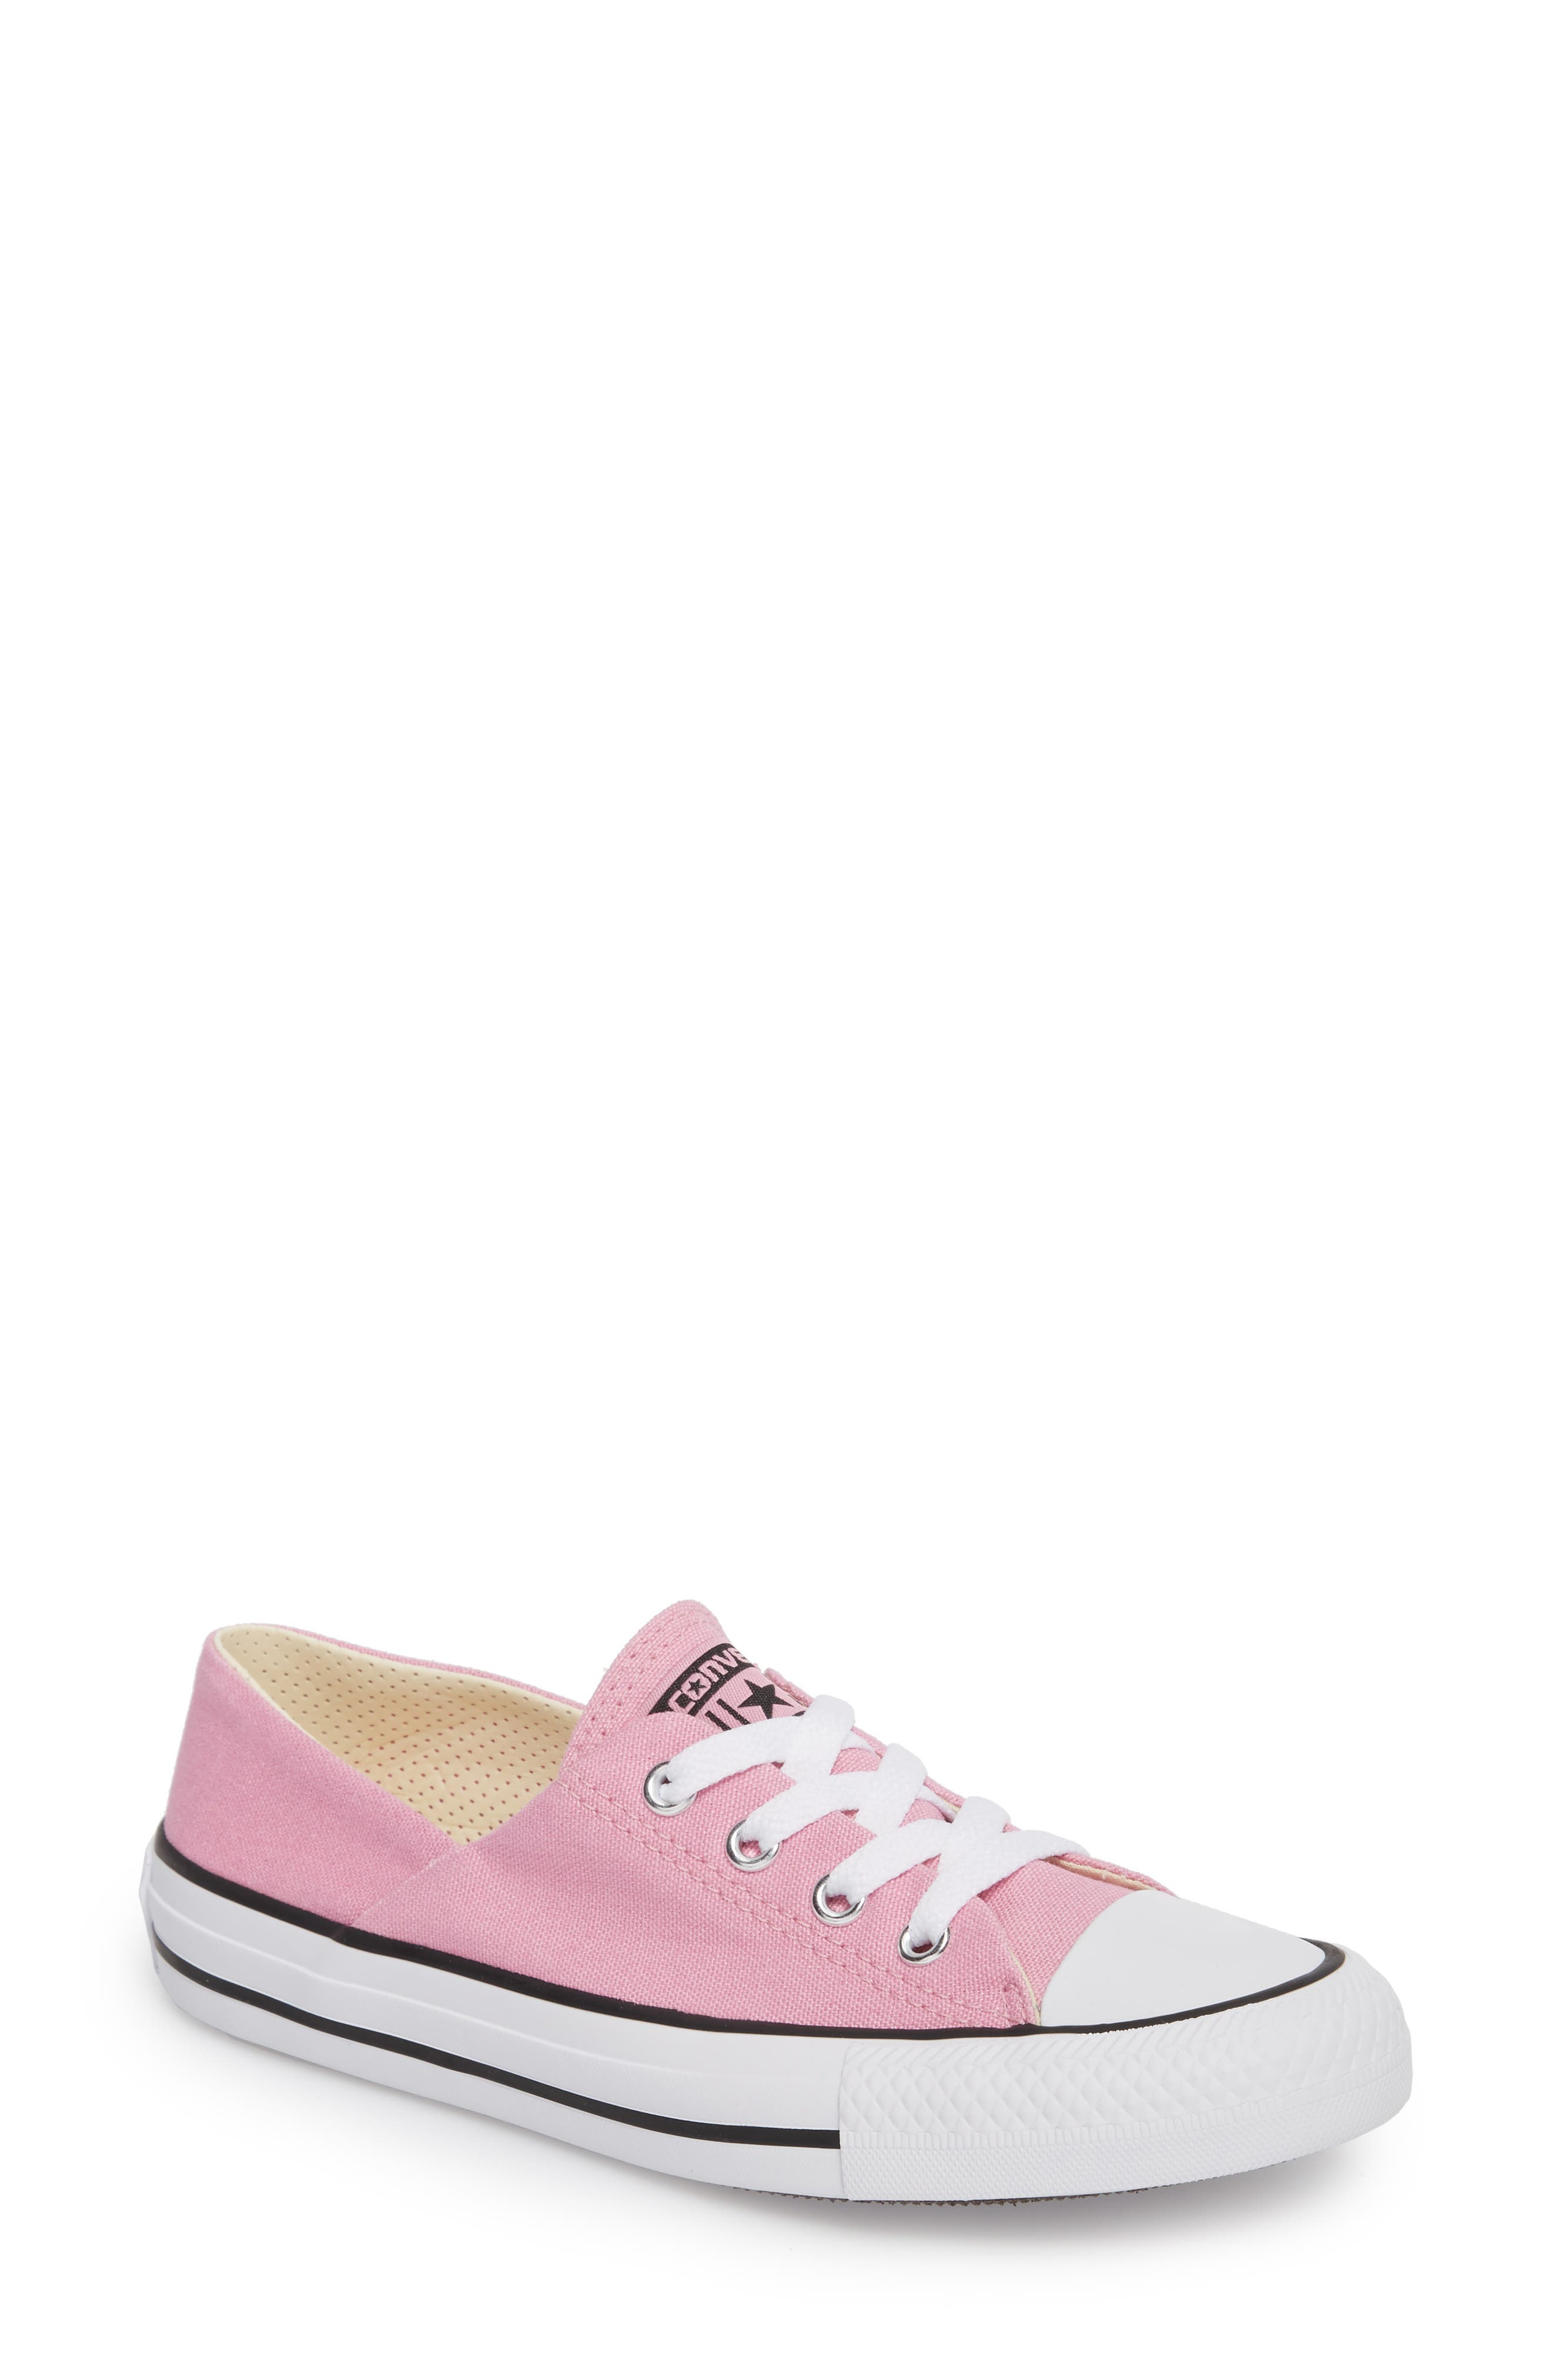 Main Image - Converse Chuck Taylor® All Star® Coral Ox Low Top Sneaker (Women)